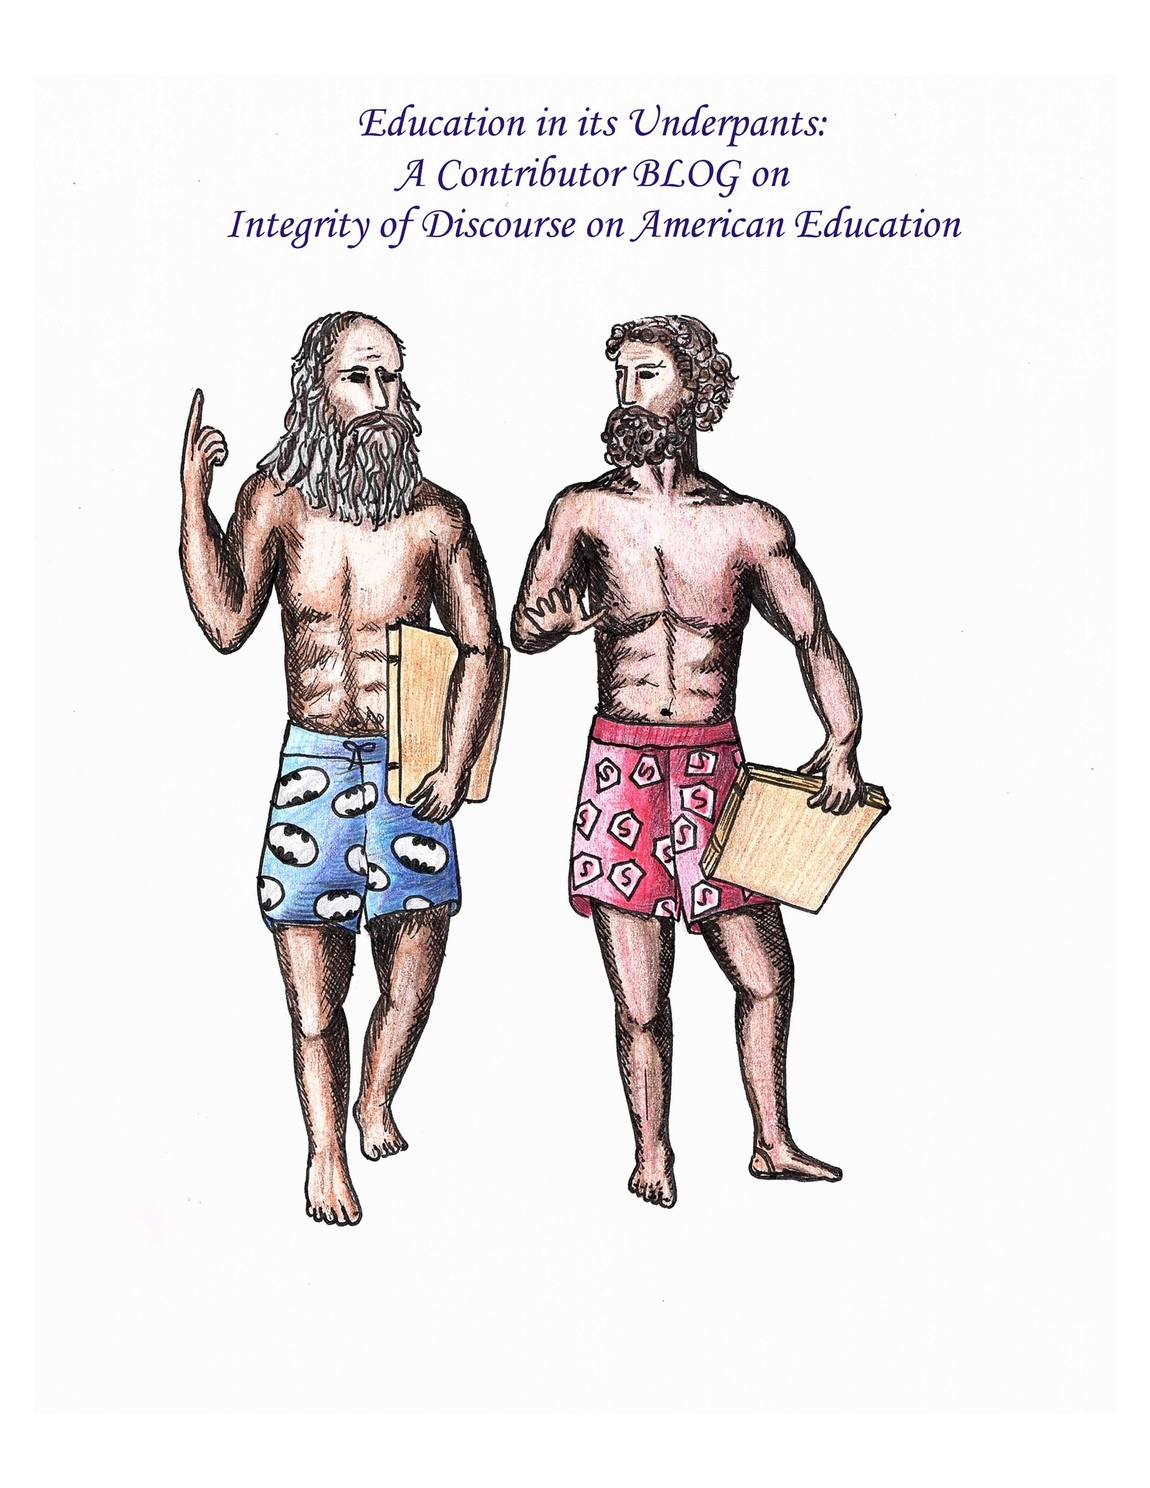 Summer Zellem - Education in its Underpants:  Integrity of Discourse on American Education